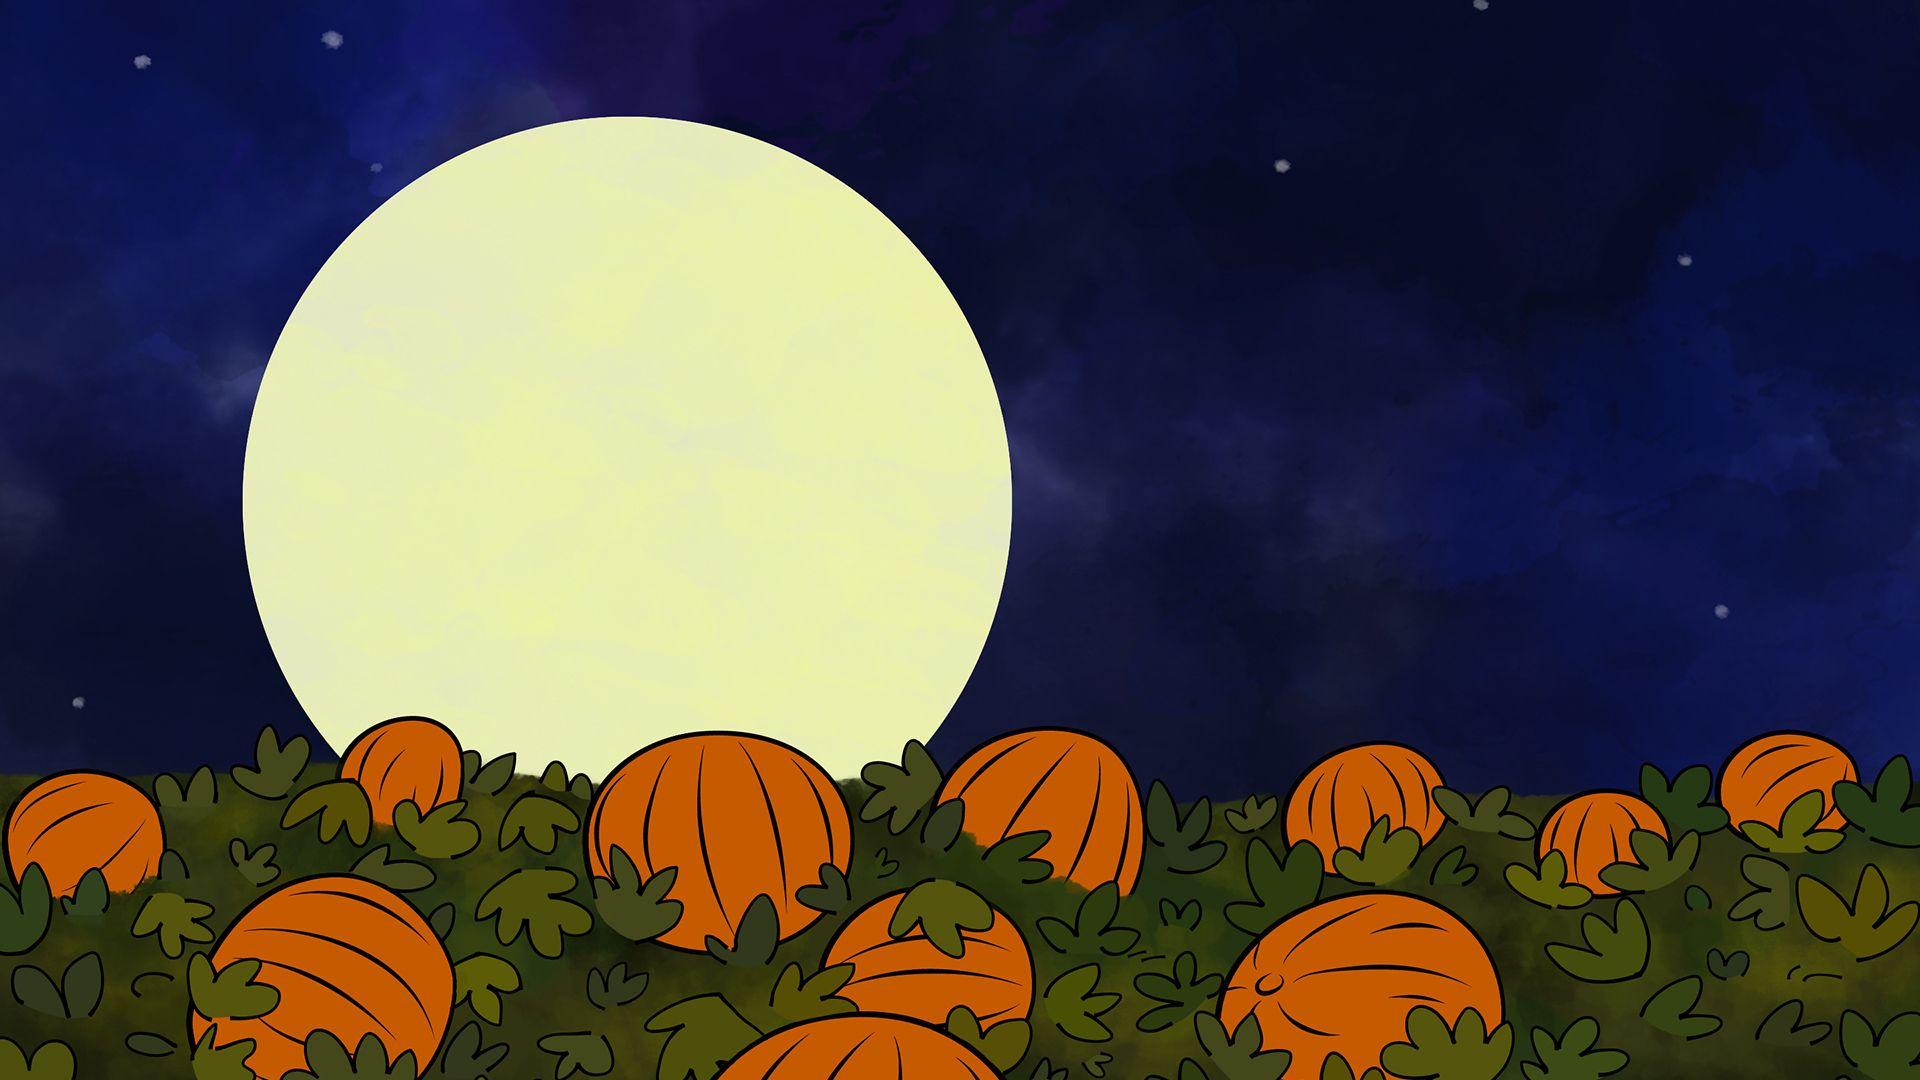 Download Great Pumpkin Charlie Brown Backgrounds 1920x1080